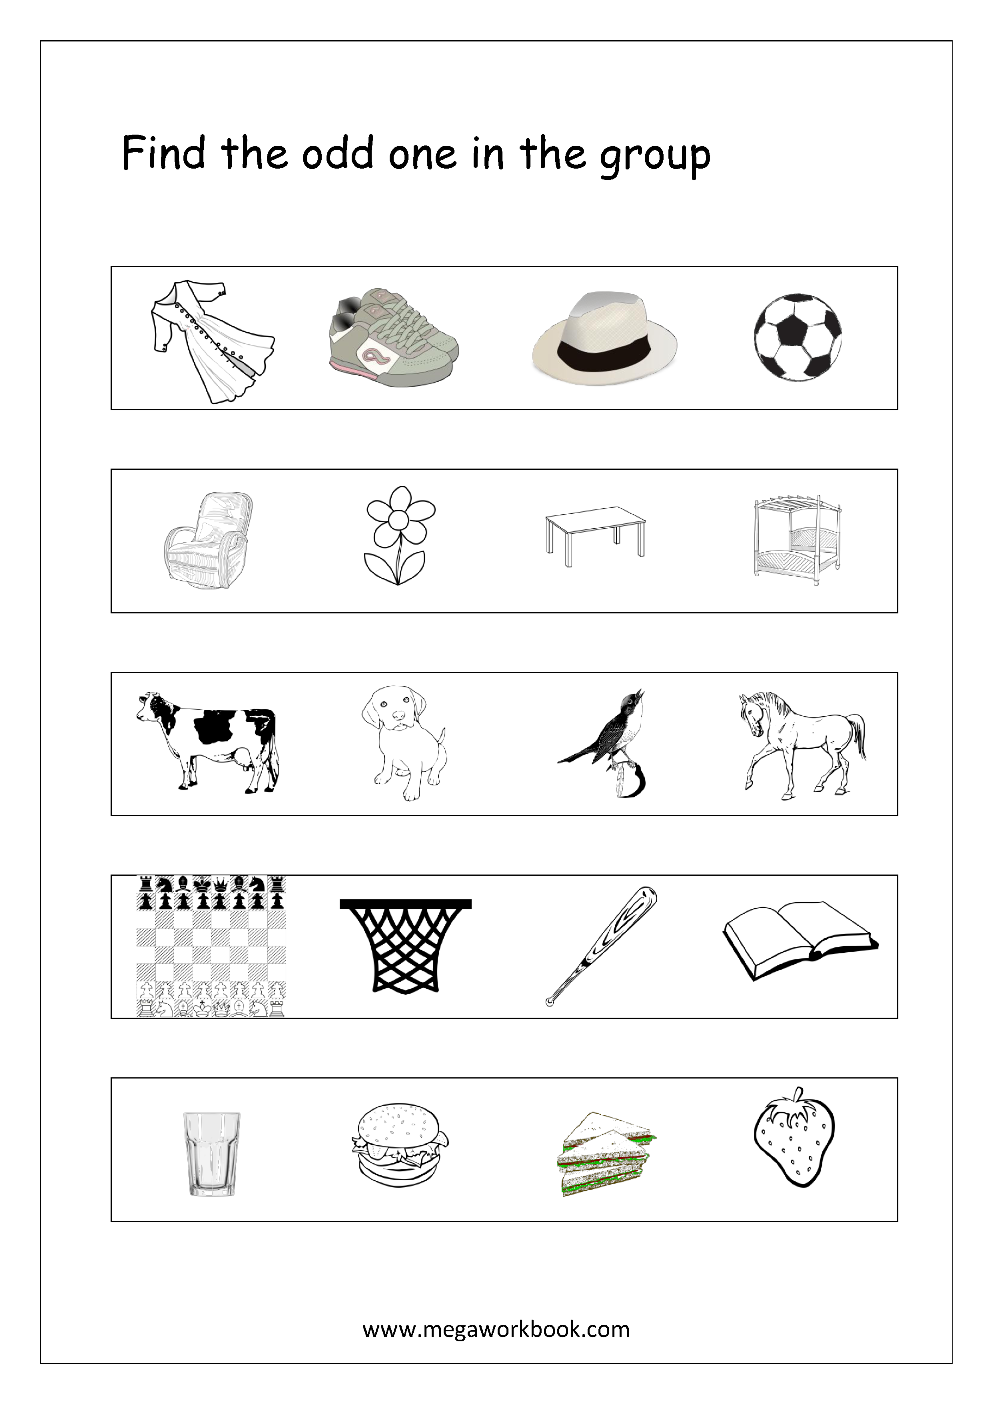 Worksheets Free Printable Rhyming Worksheets For Kindergarten free general aptitude worksheets odd one out megaworkbook check these printable for kindergarten which are designed so that children learn logical reasoning